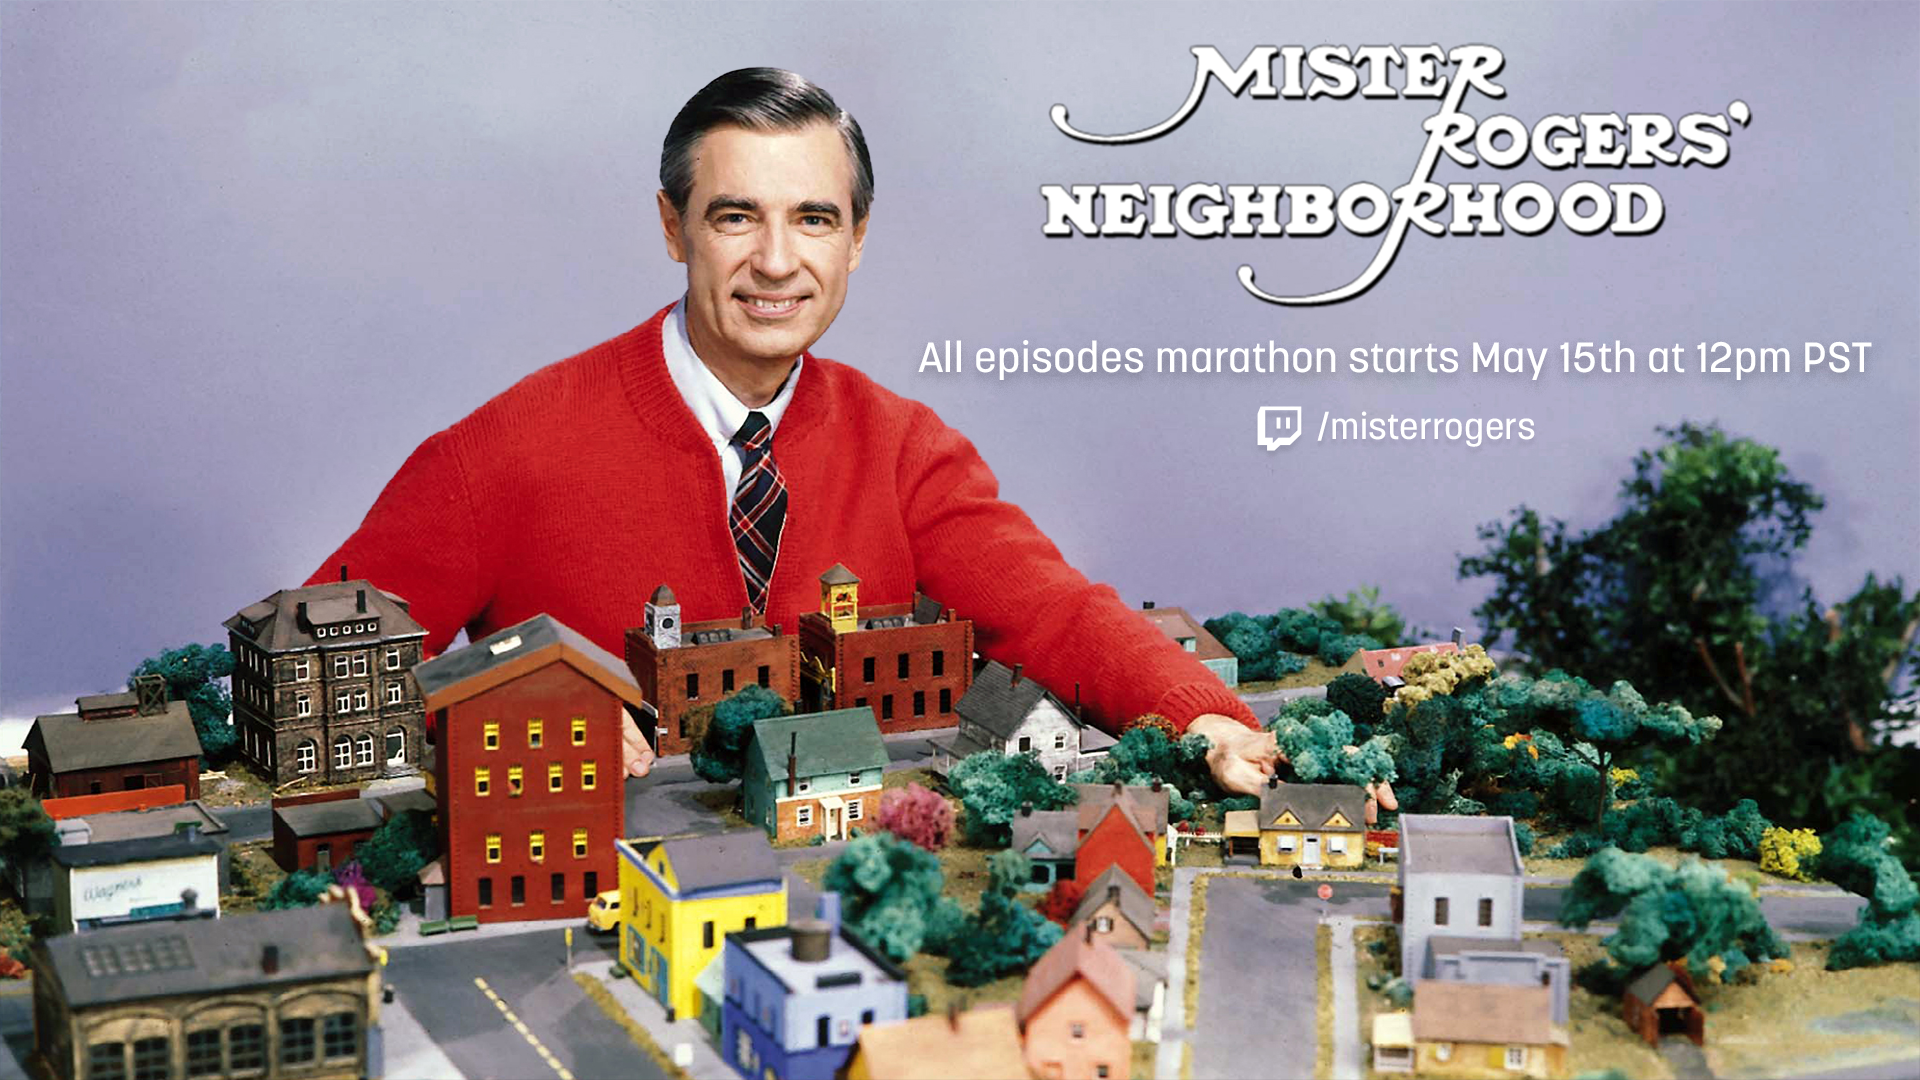 Amazon To Stream Mr Rogers Neighborhood In Twitch Marathon Fortune